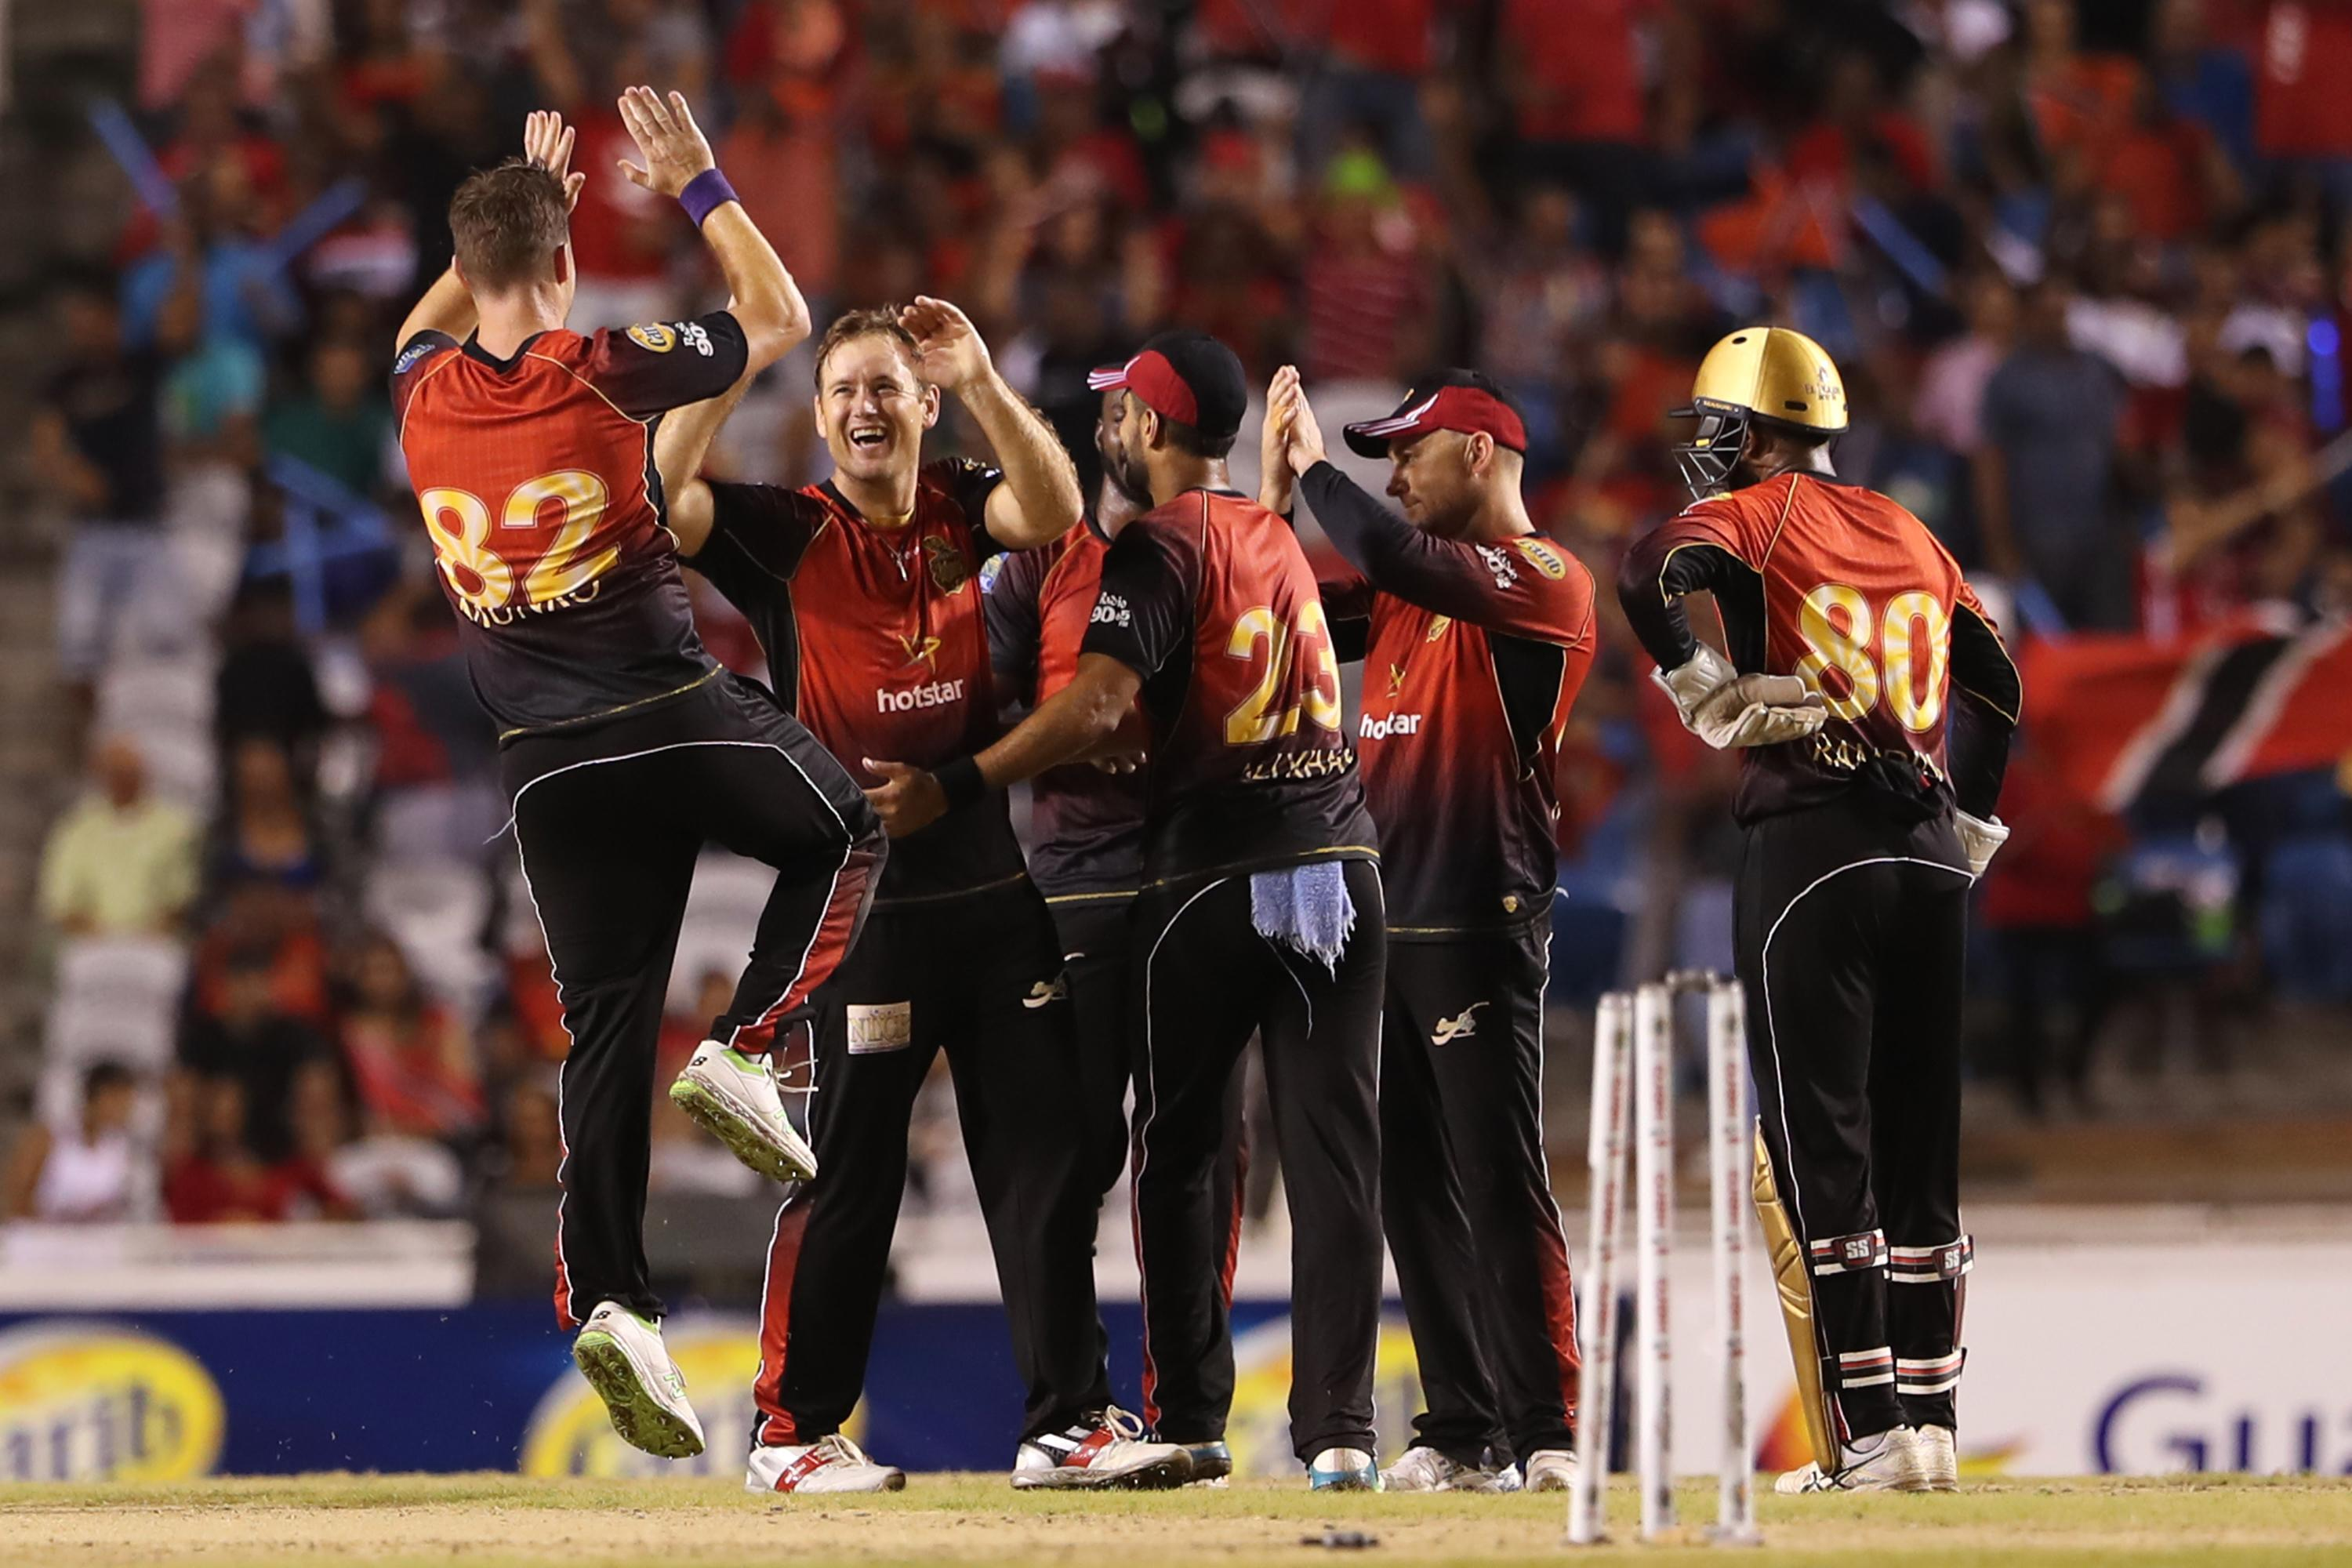 Ahmed, McCullum take Knight Riders to CPL 2018 final